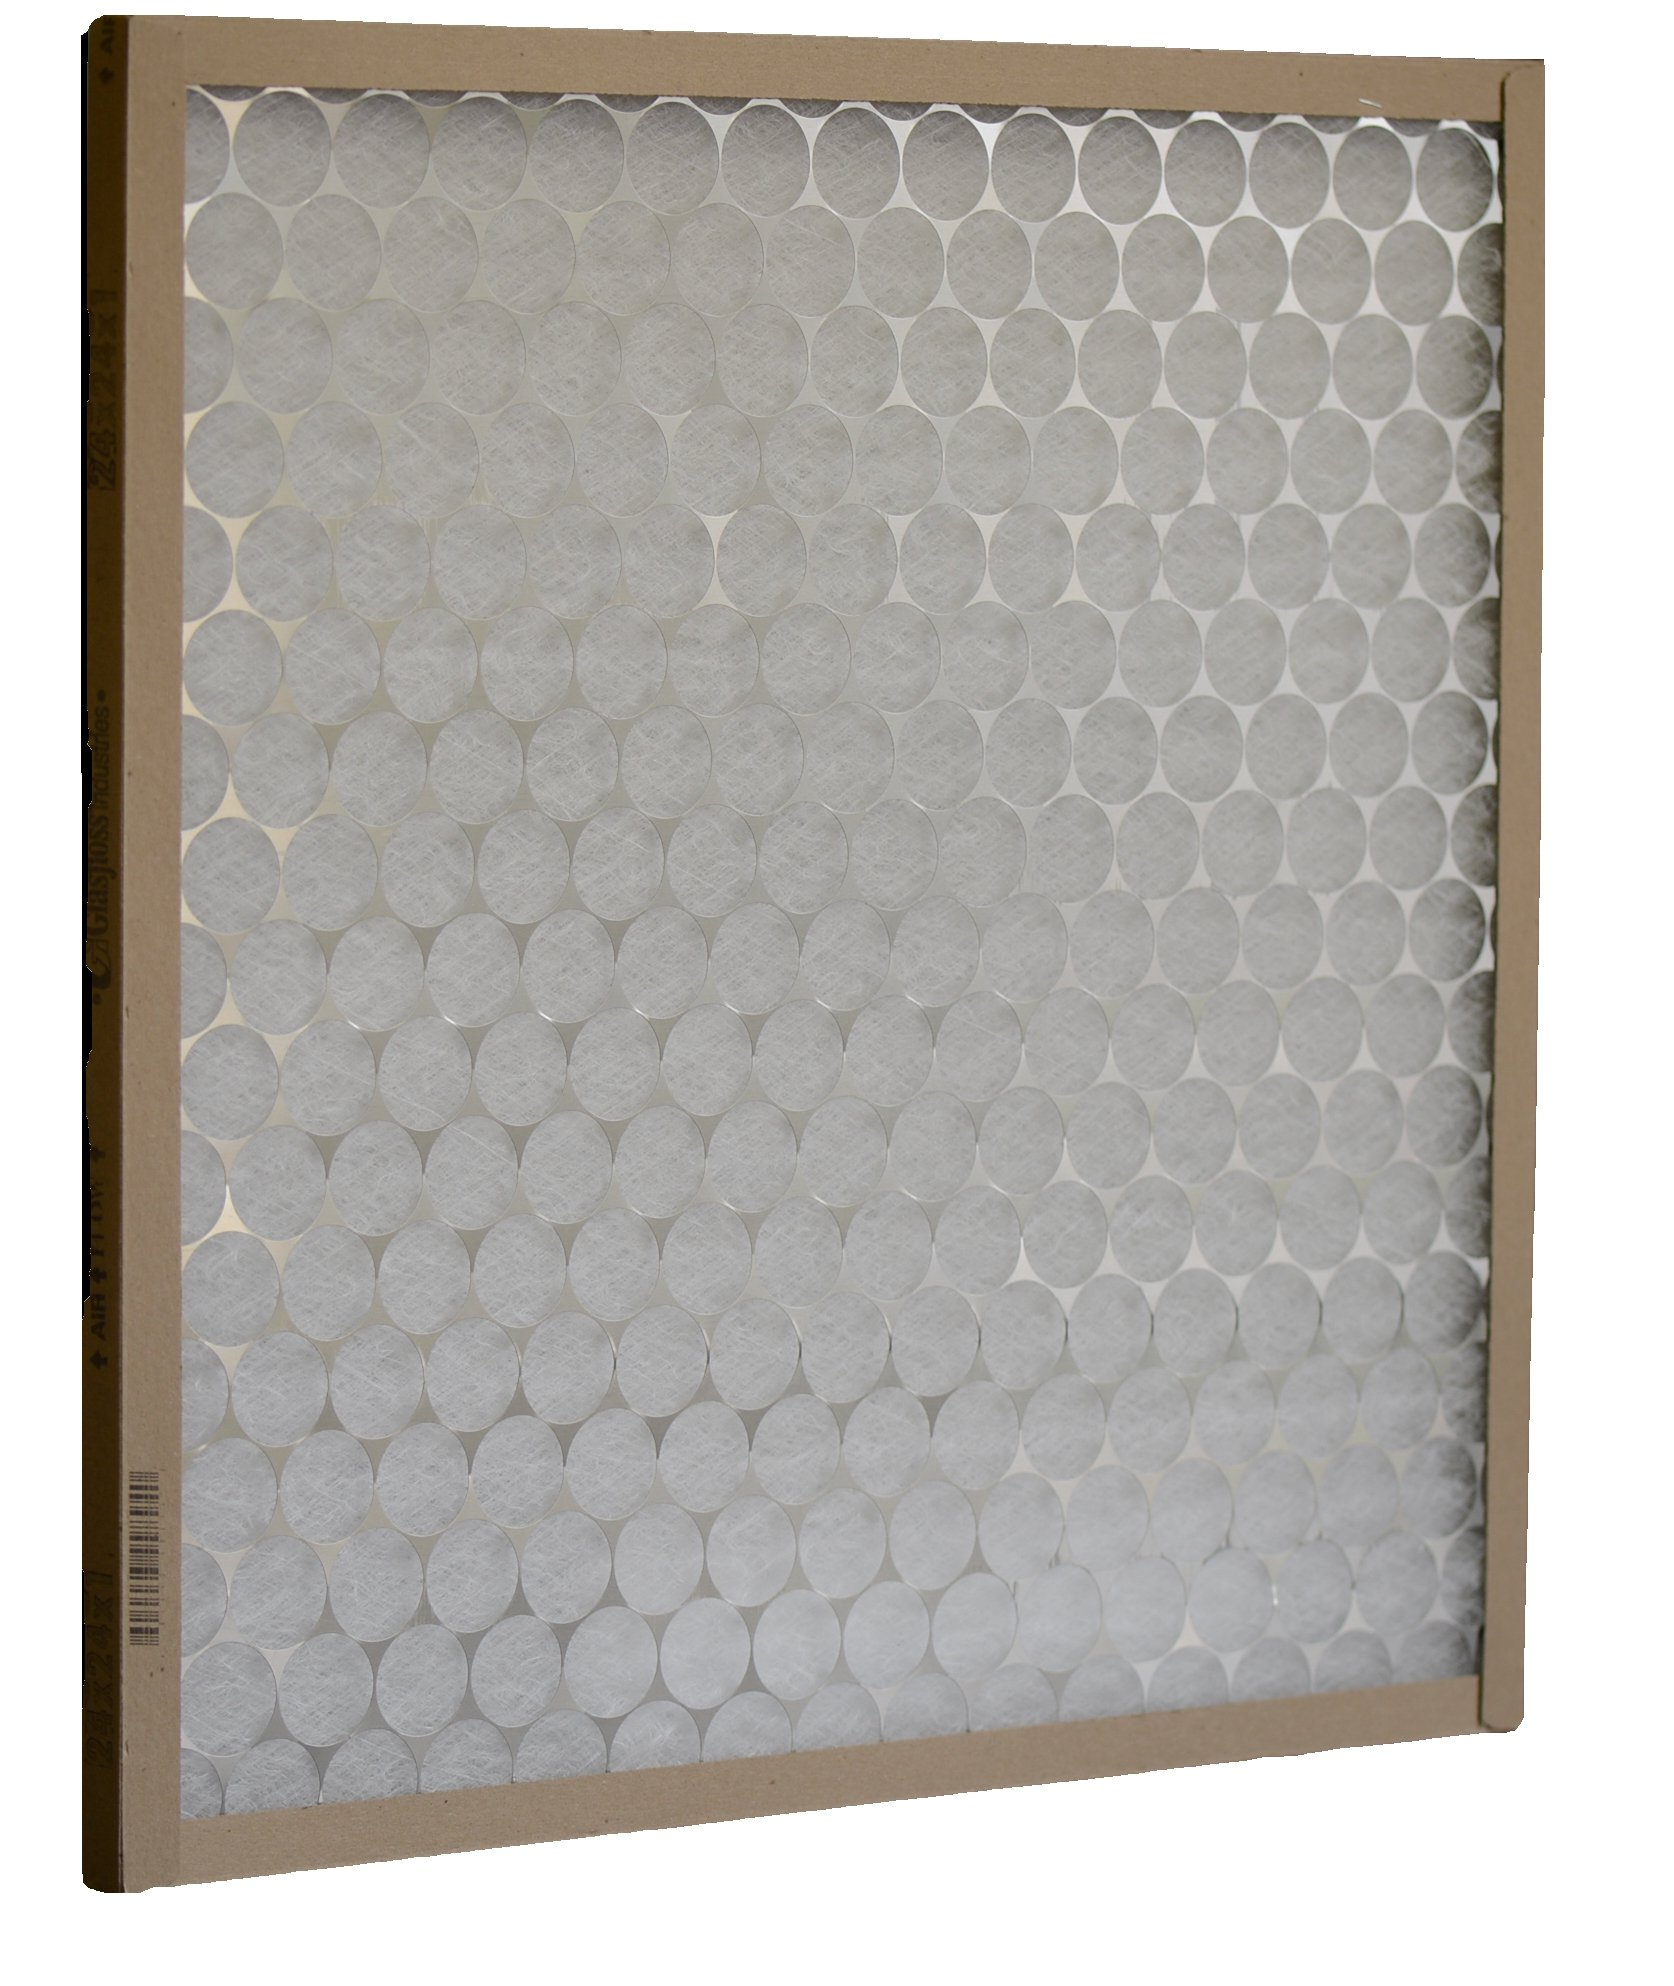 Glasfloss Industries PTA25252 PTA Series Heavy Duty Disposable Panel Air Filter, 12-Case